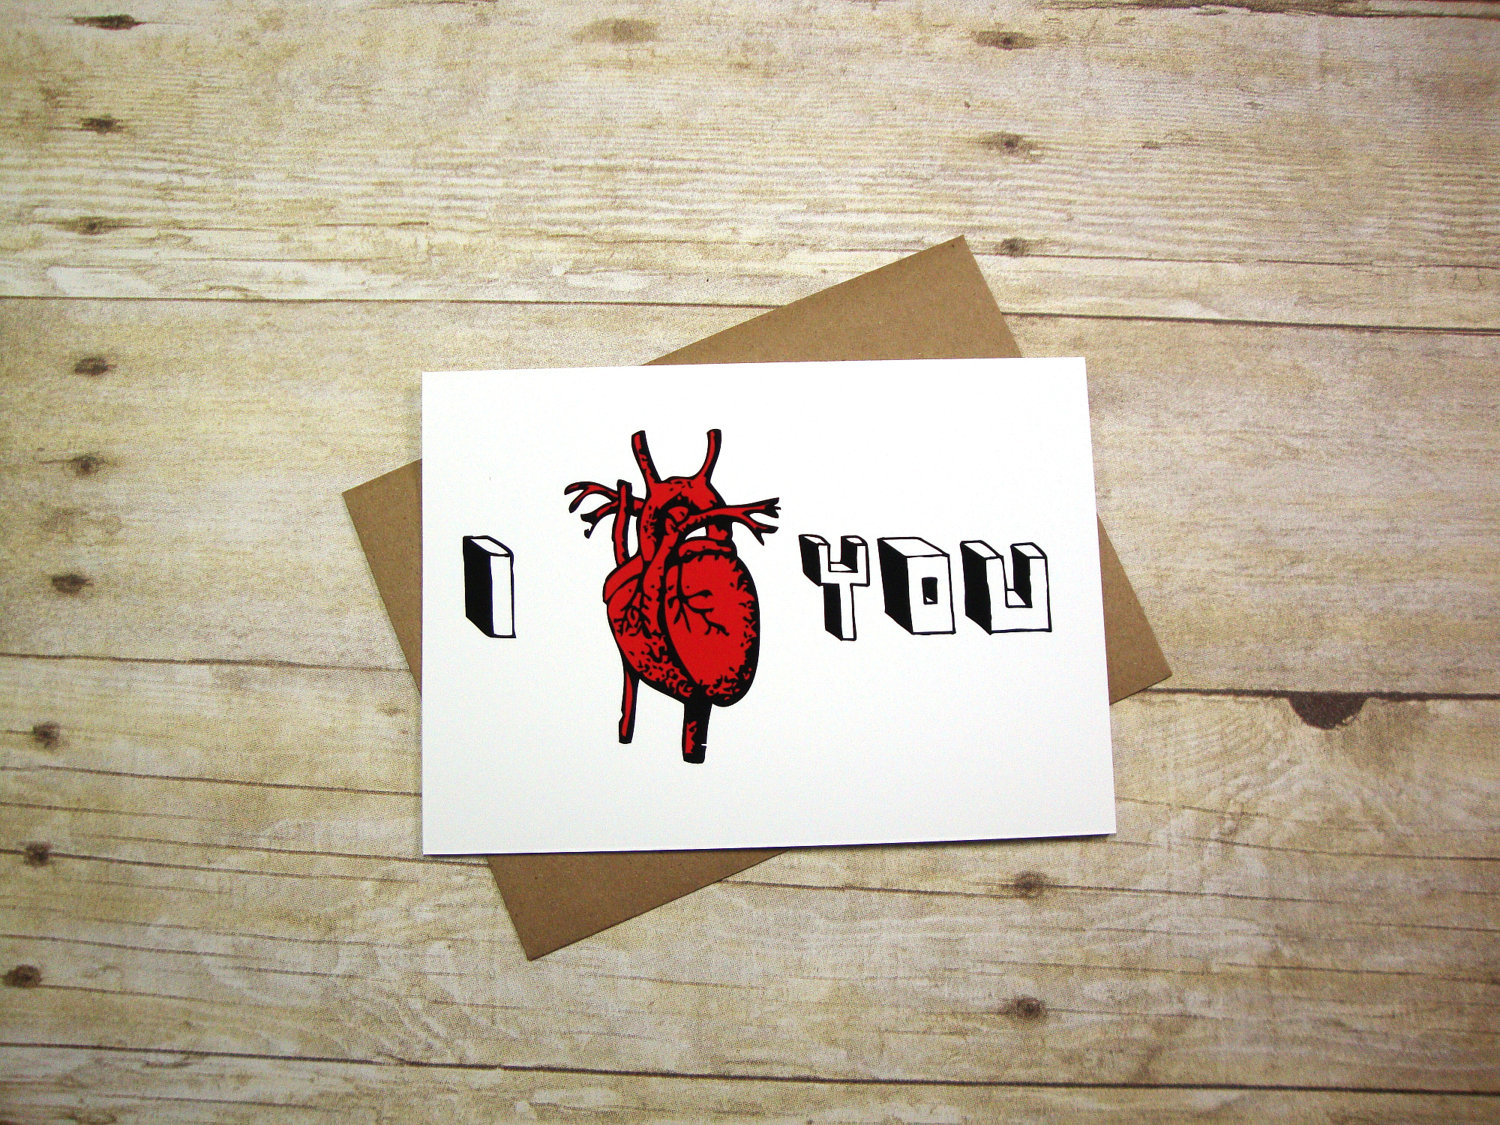 I love you greeting cards for girlfriend online quotes gallery iloveyougreetingcardsforgirlfriend11 kristyandbryce Images